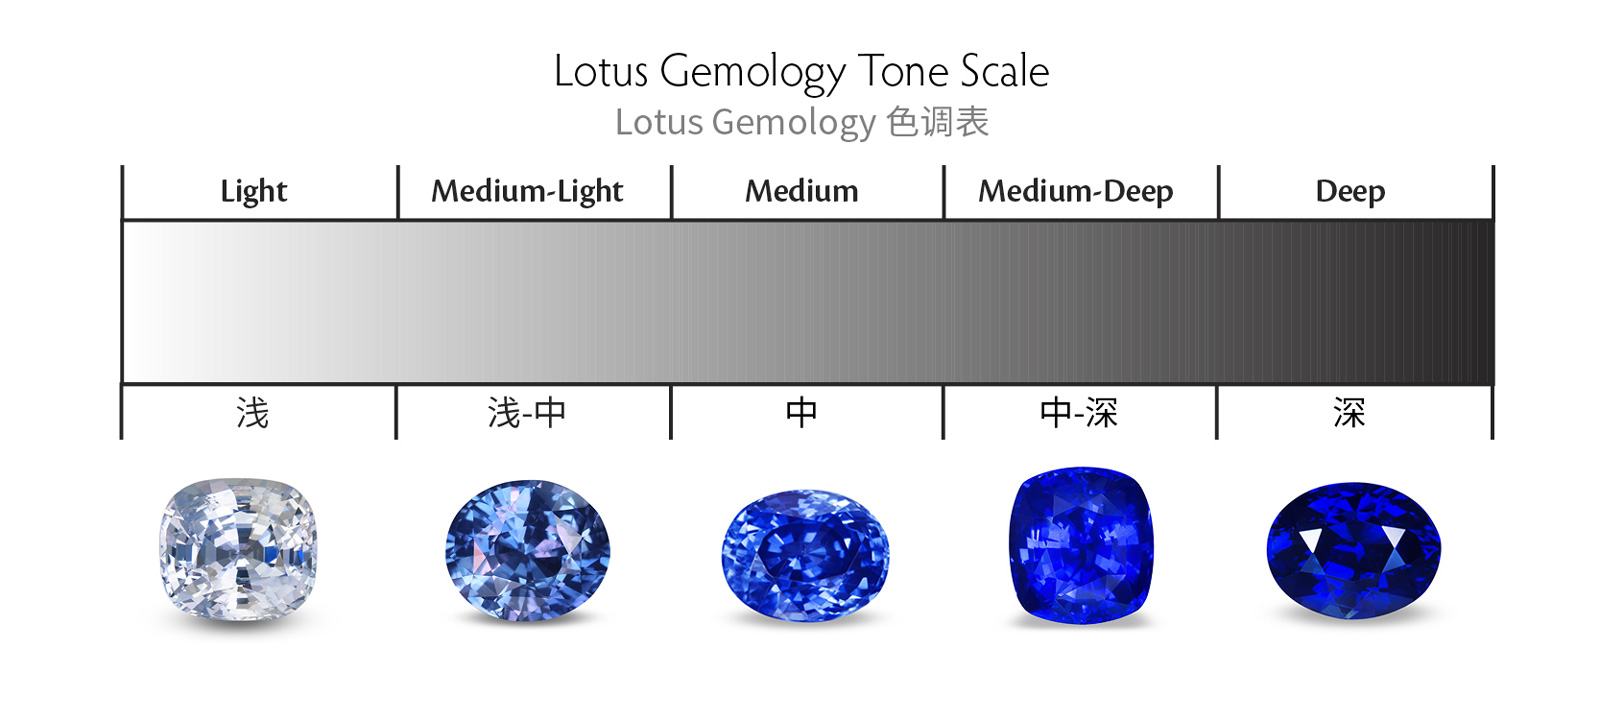 Lotus Gemology reports use a five-step tonal scale.